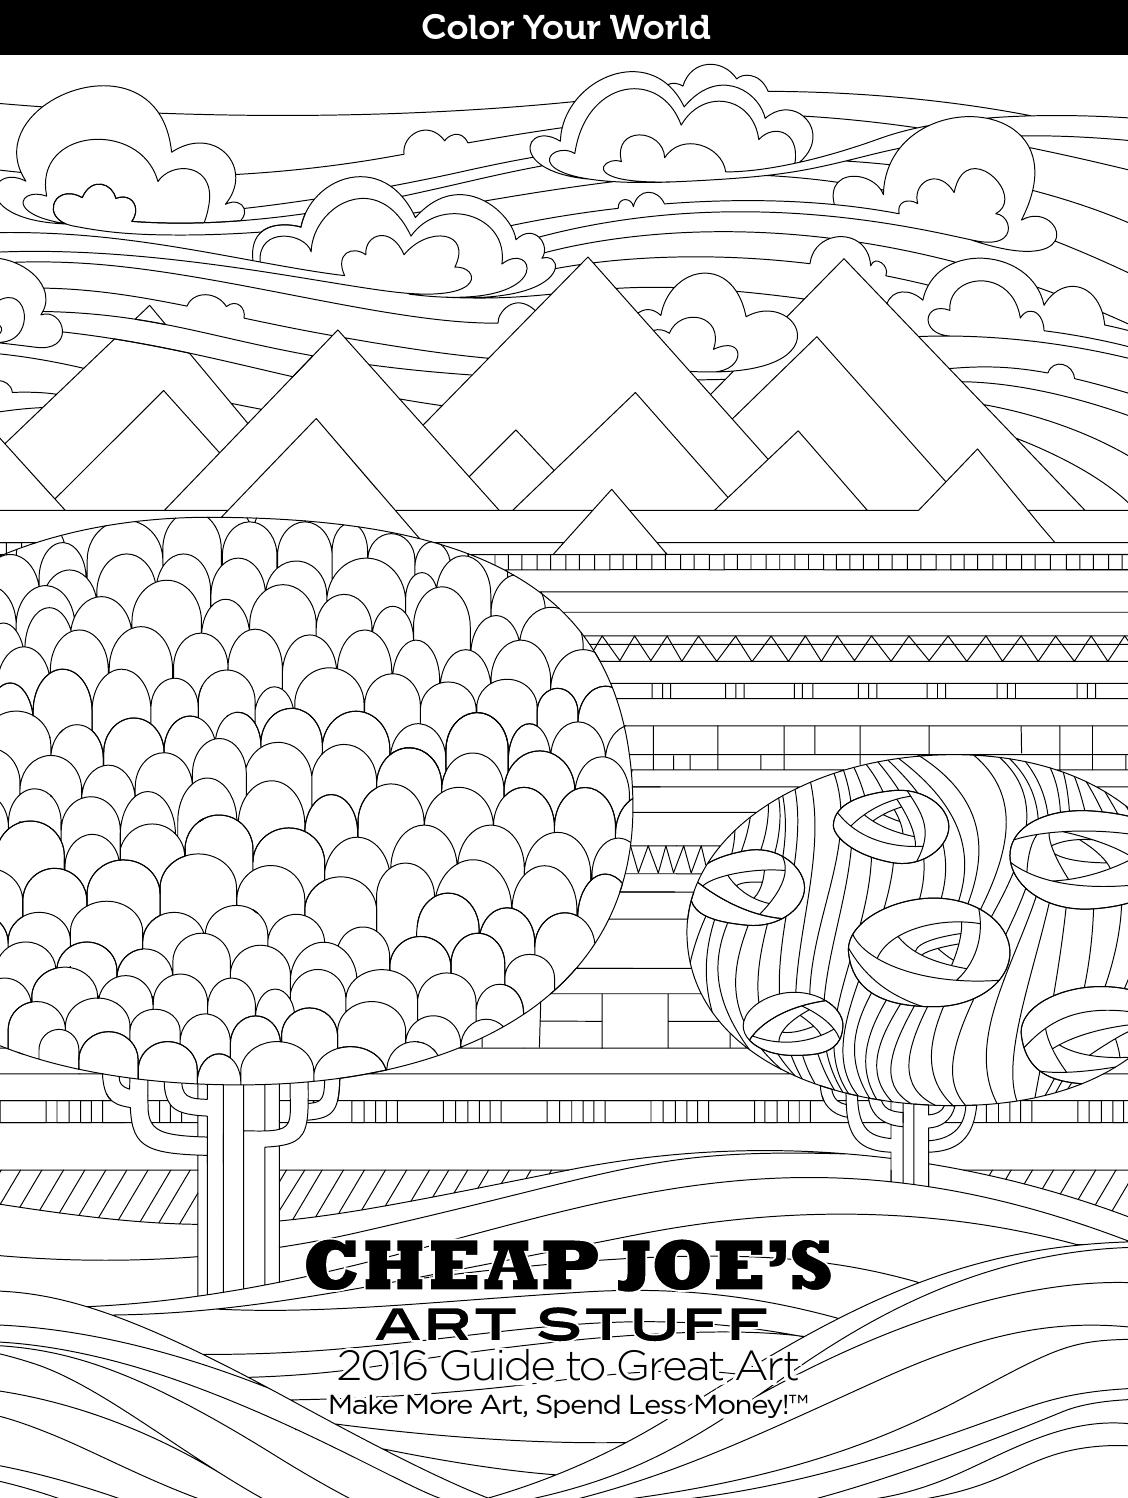 Cheap Joe's Art Stuff 2016 Guide to Great Art by Cheap Joe's Art Stuff -  issuu